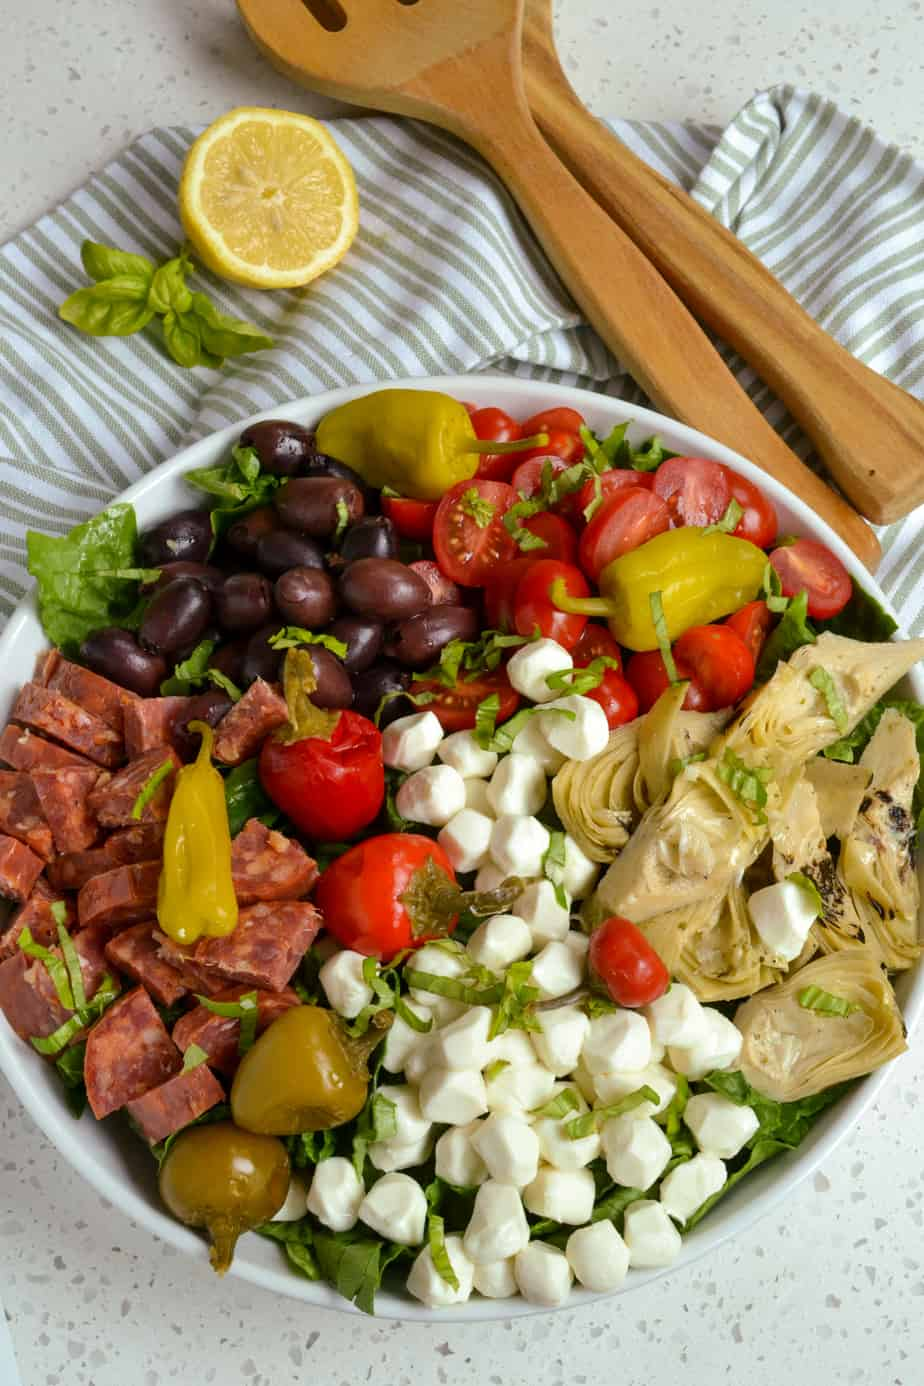 An overhead view of a bowl of antipasto salad with salami, mozzarella, tomatoes, and olives.